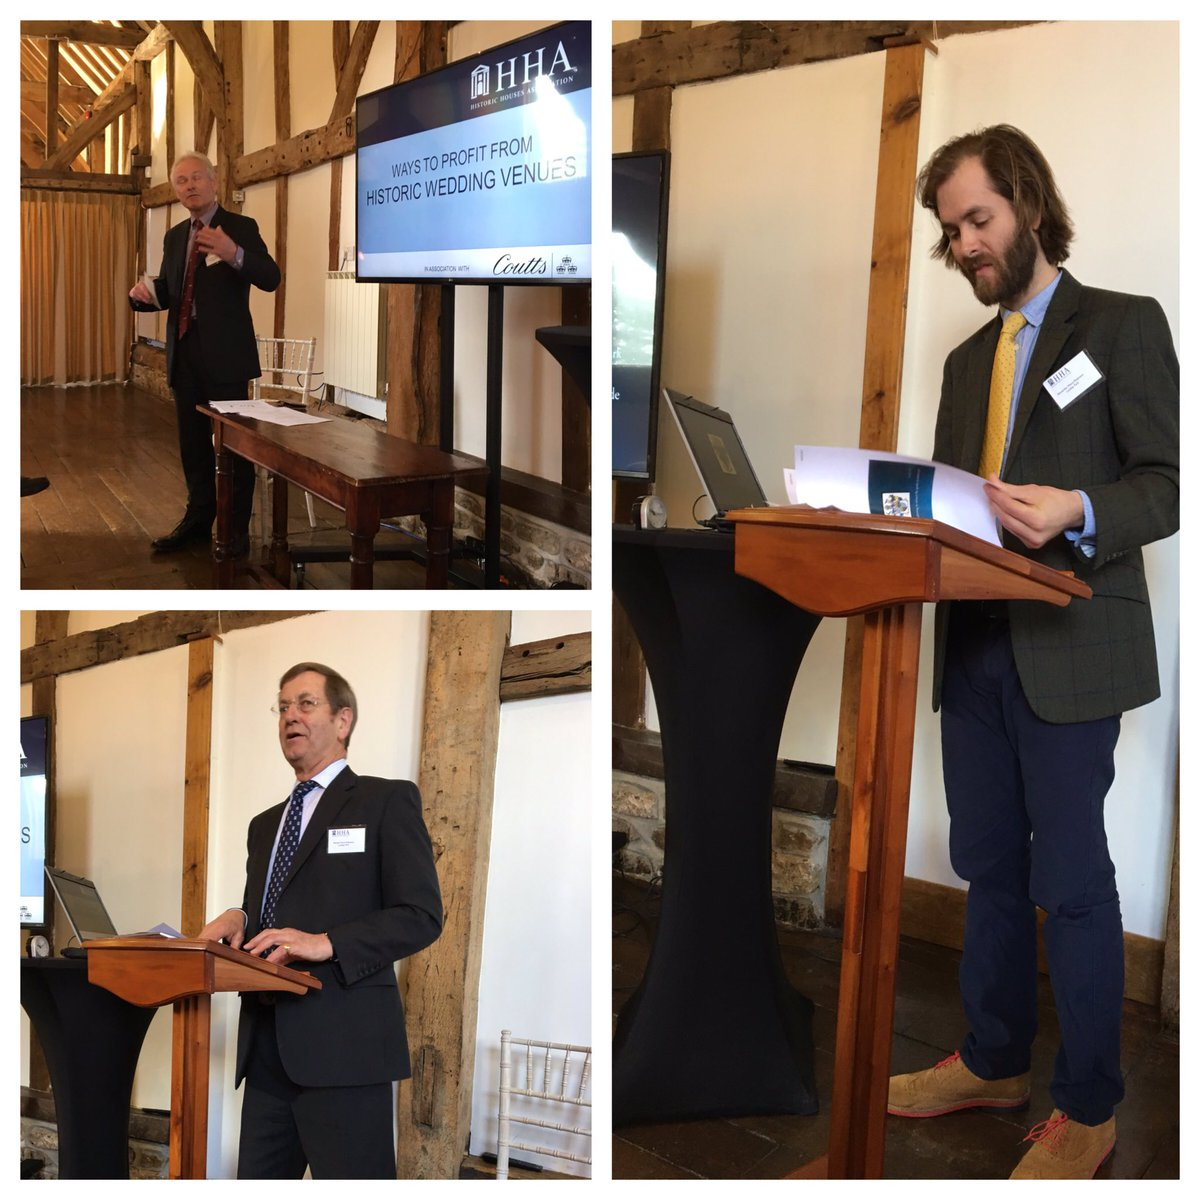 RT @Browsholme Hello @LancsWedHour Yesterday we were at @LoseleyPark involved in an @Historic_Houses seminar on weddings. Fascinating stuff. #lancswedhour